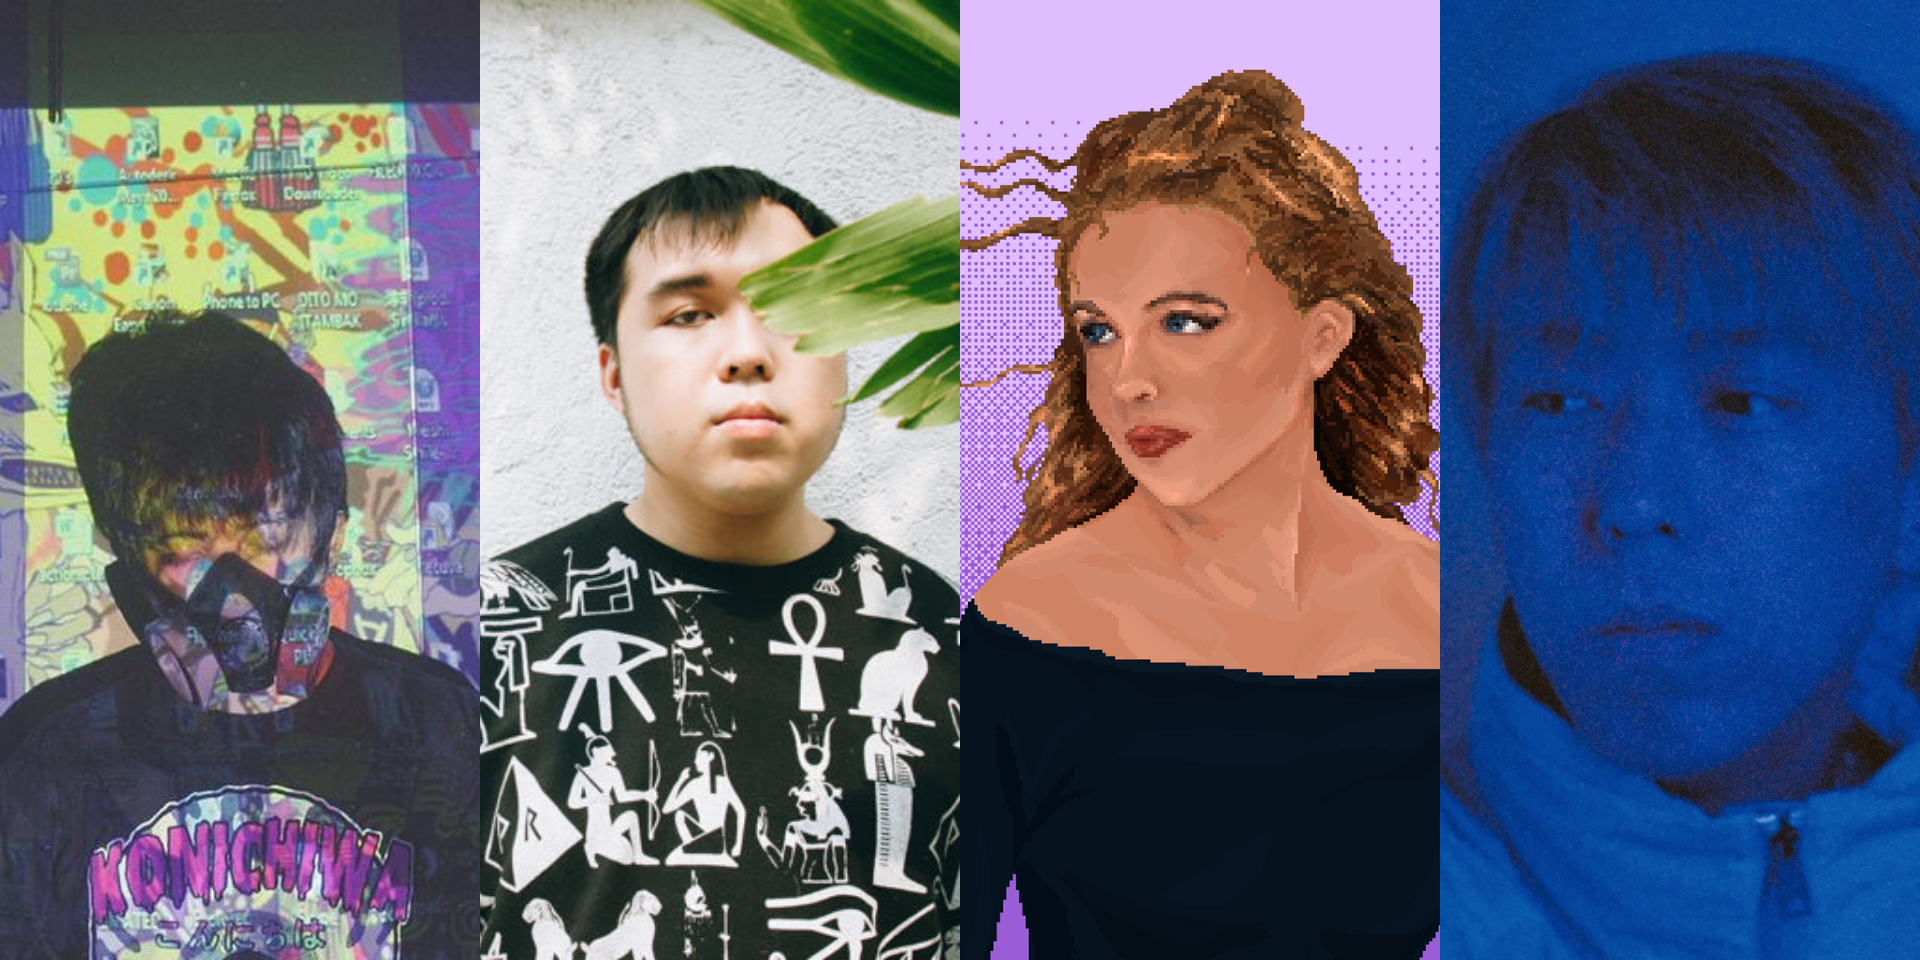 Meishi Smile, similarobjects, U-Pistol, DJ Sabrina The Teenage DJ, and more to perform at online music festival, Mechafest 2021